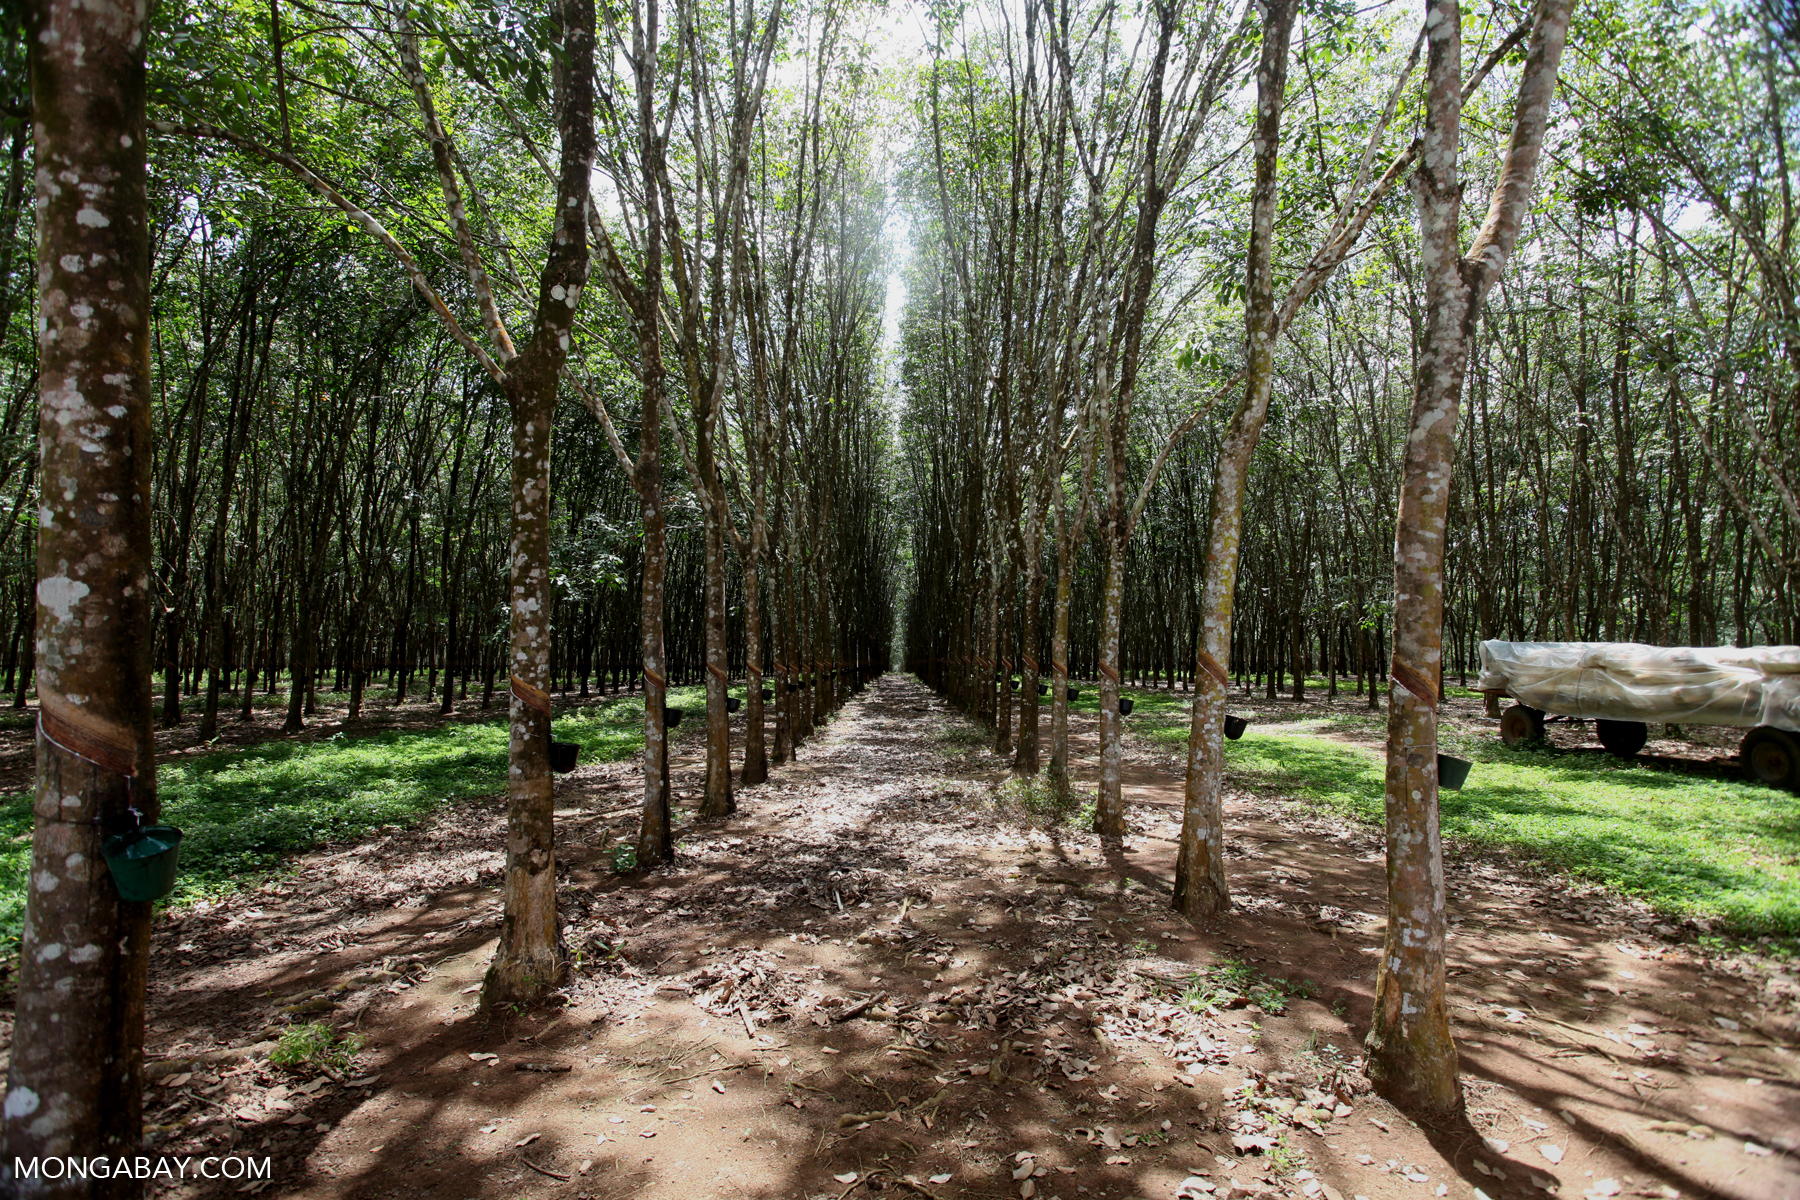 As Cambodia's Economy Grows, Its Rainforest Disappears